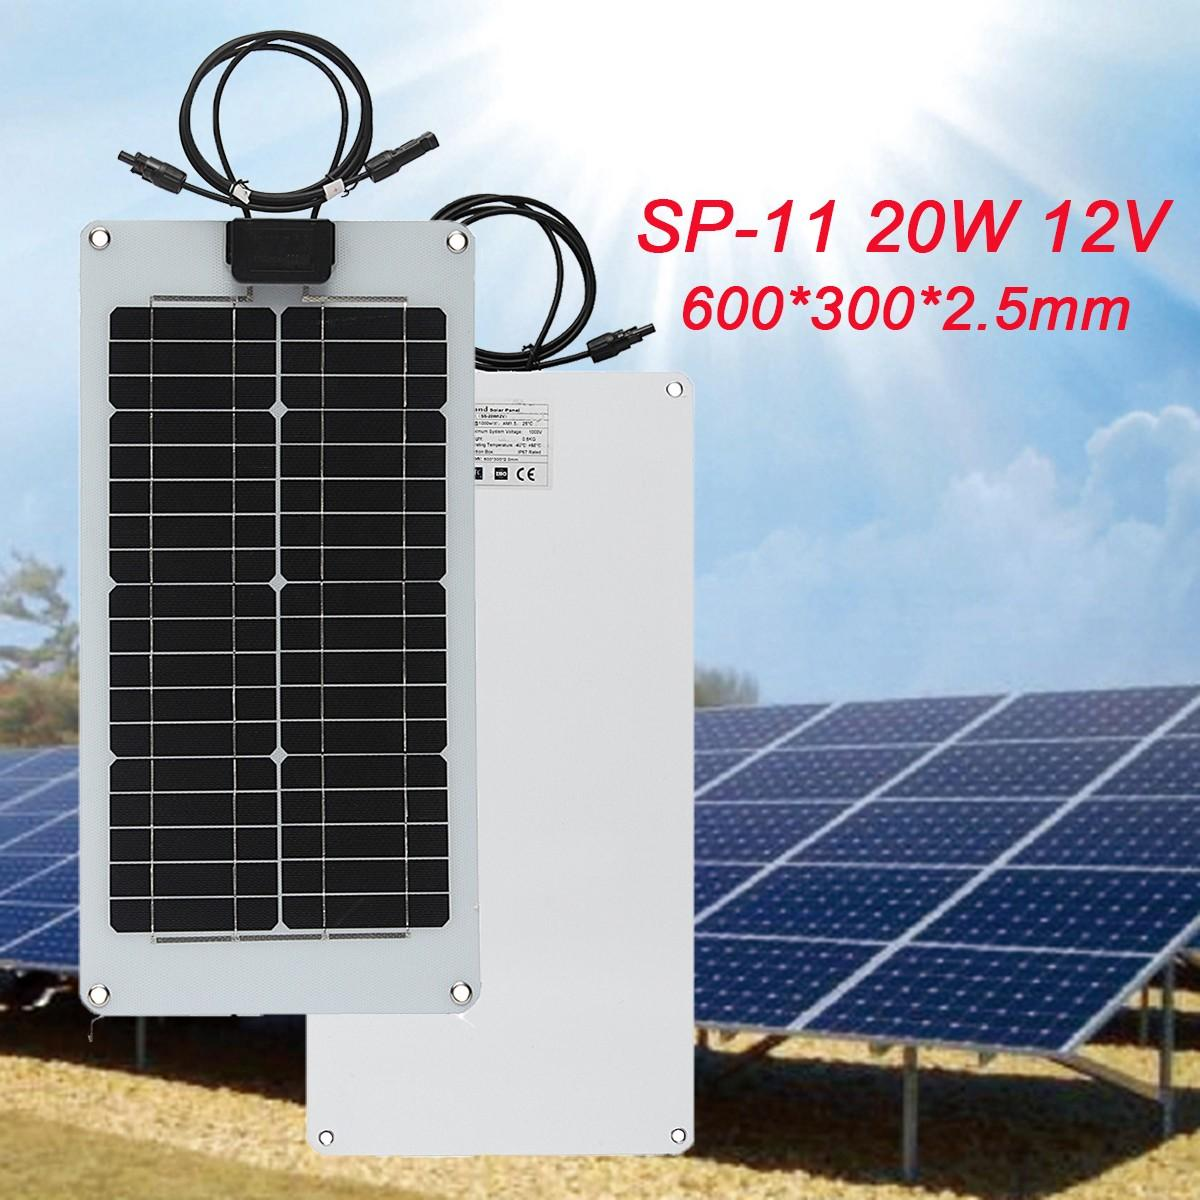 KINCO 20W 12V Semi Flexible Solar Panel Monocrystalline Silicon Sunpower ETFT Efficient Solar System Supply For Car Battery sp 36 120w 12v semi flexible monocrystalline solar panel waterproof high conversion efficiency for rv boat car 1 5m cable